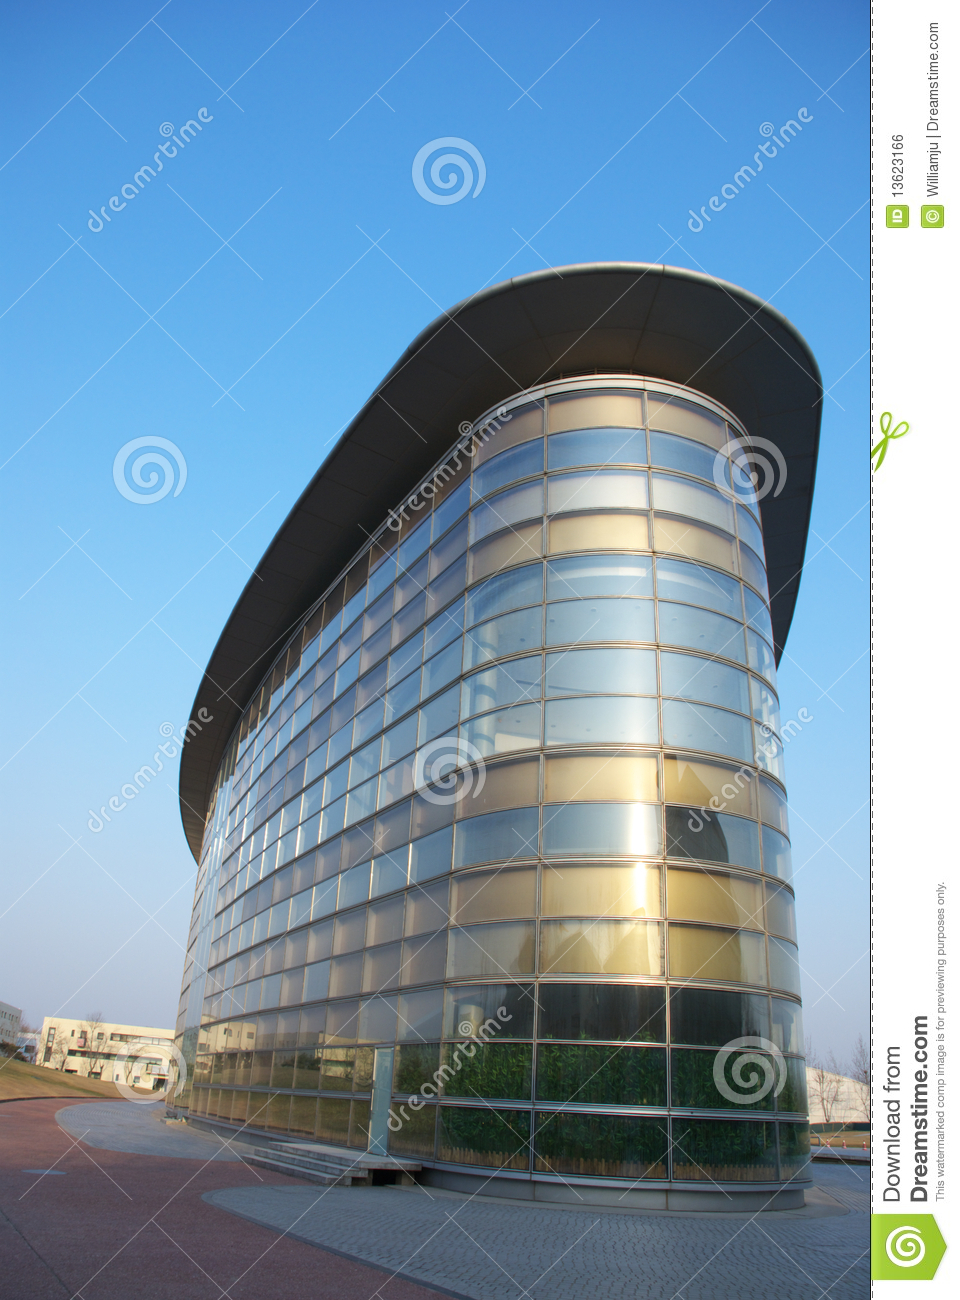 Modern College Building Royalty Free Stock Image - Image ...